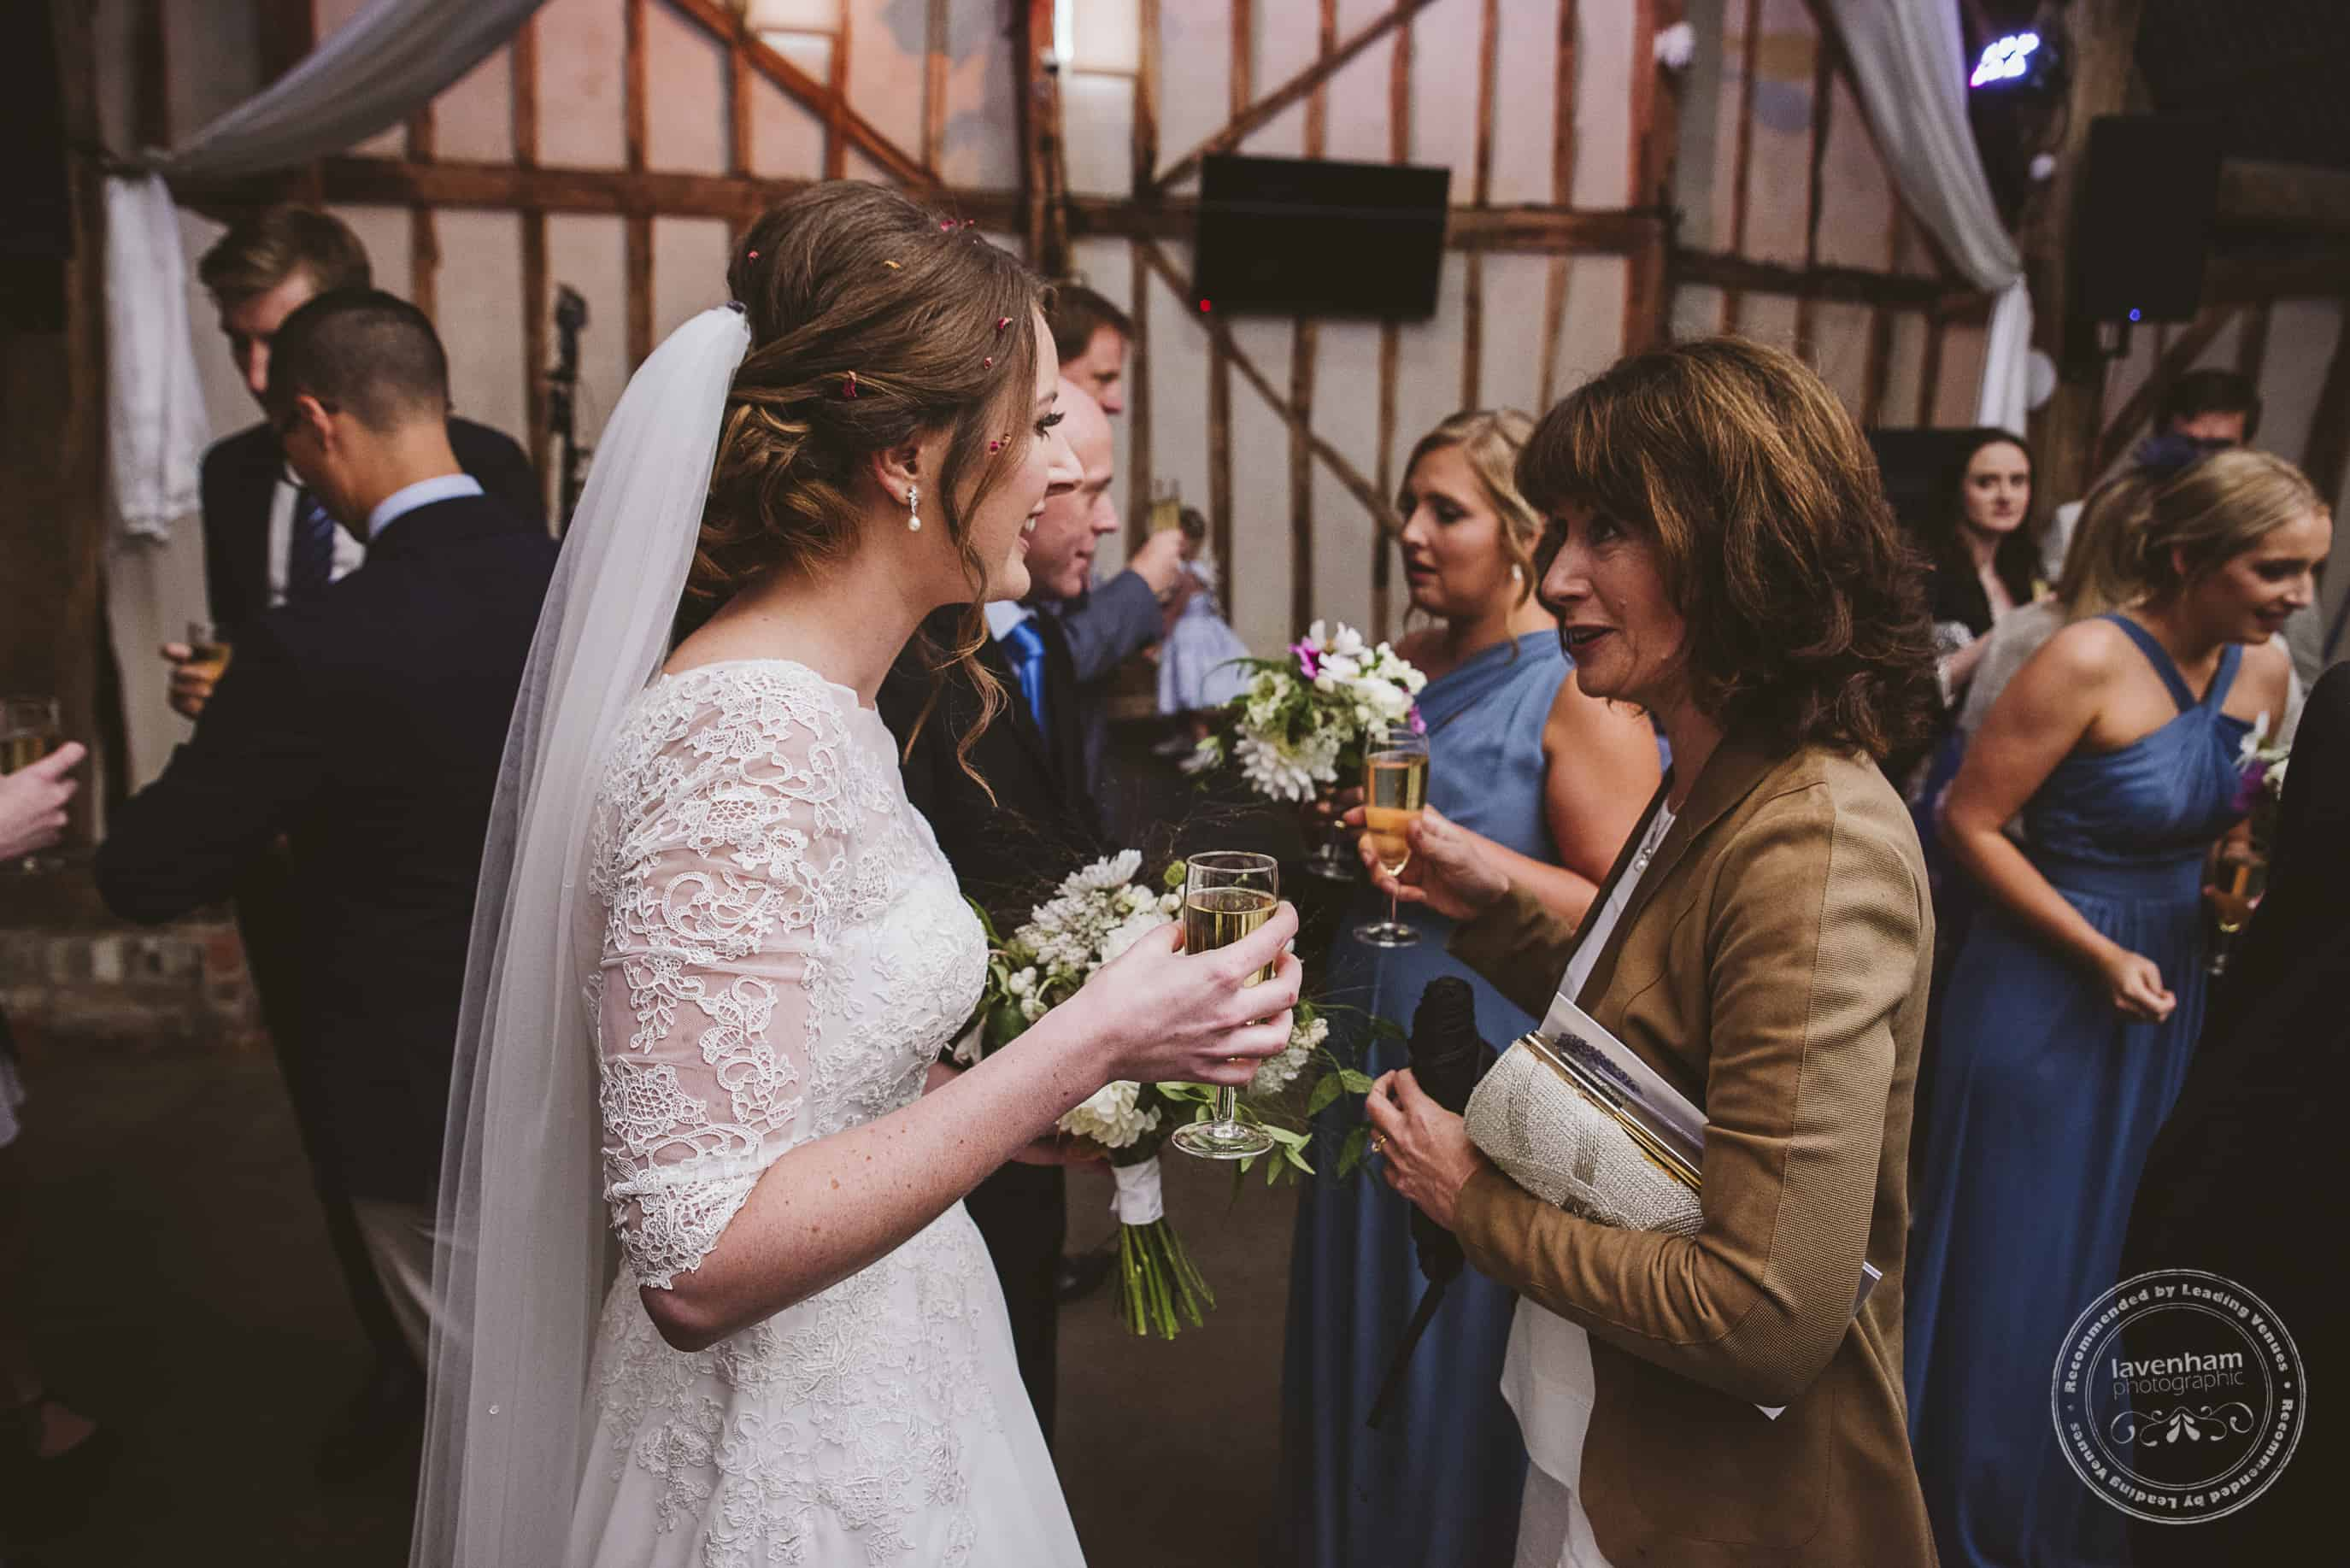 220918 Alpheton Barn Wedding Photography by Lavenham Photographic 079